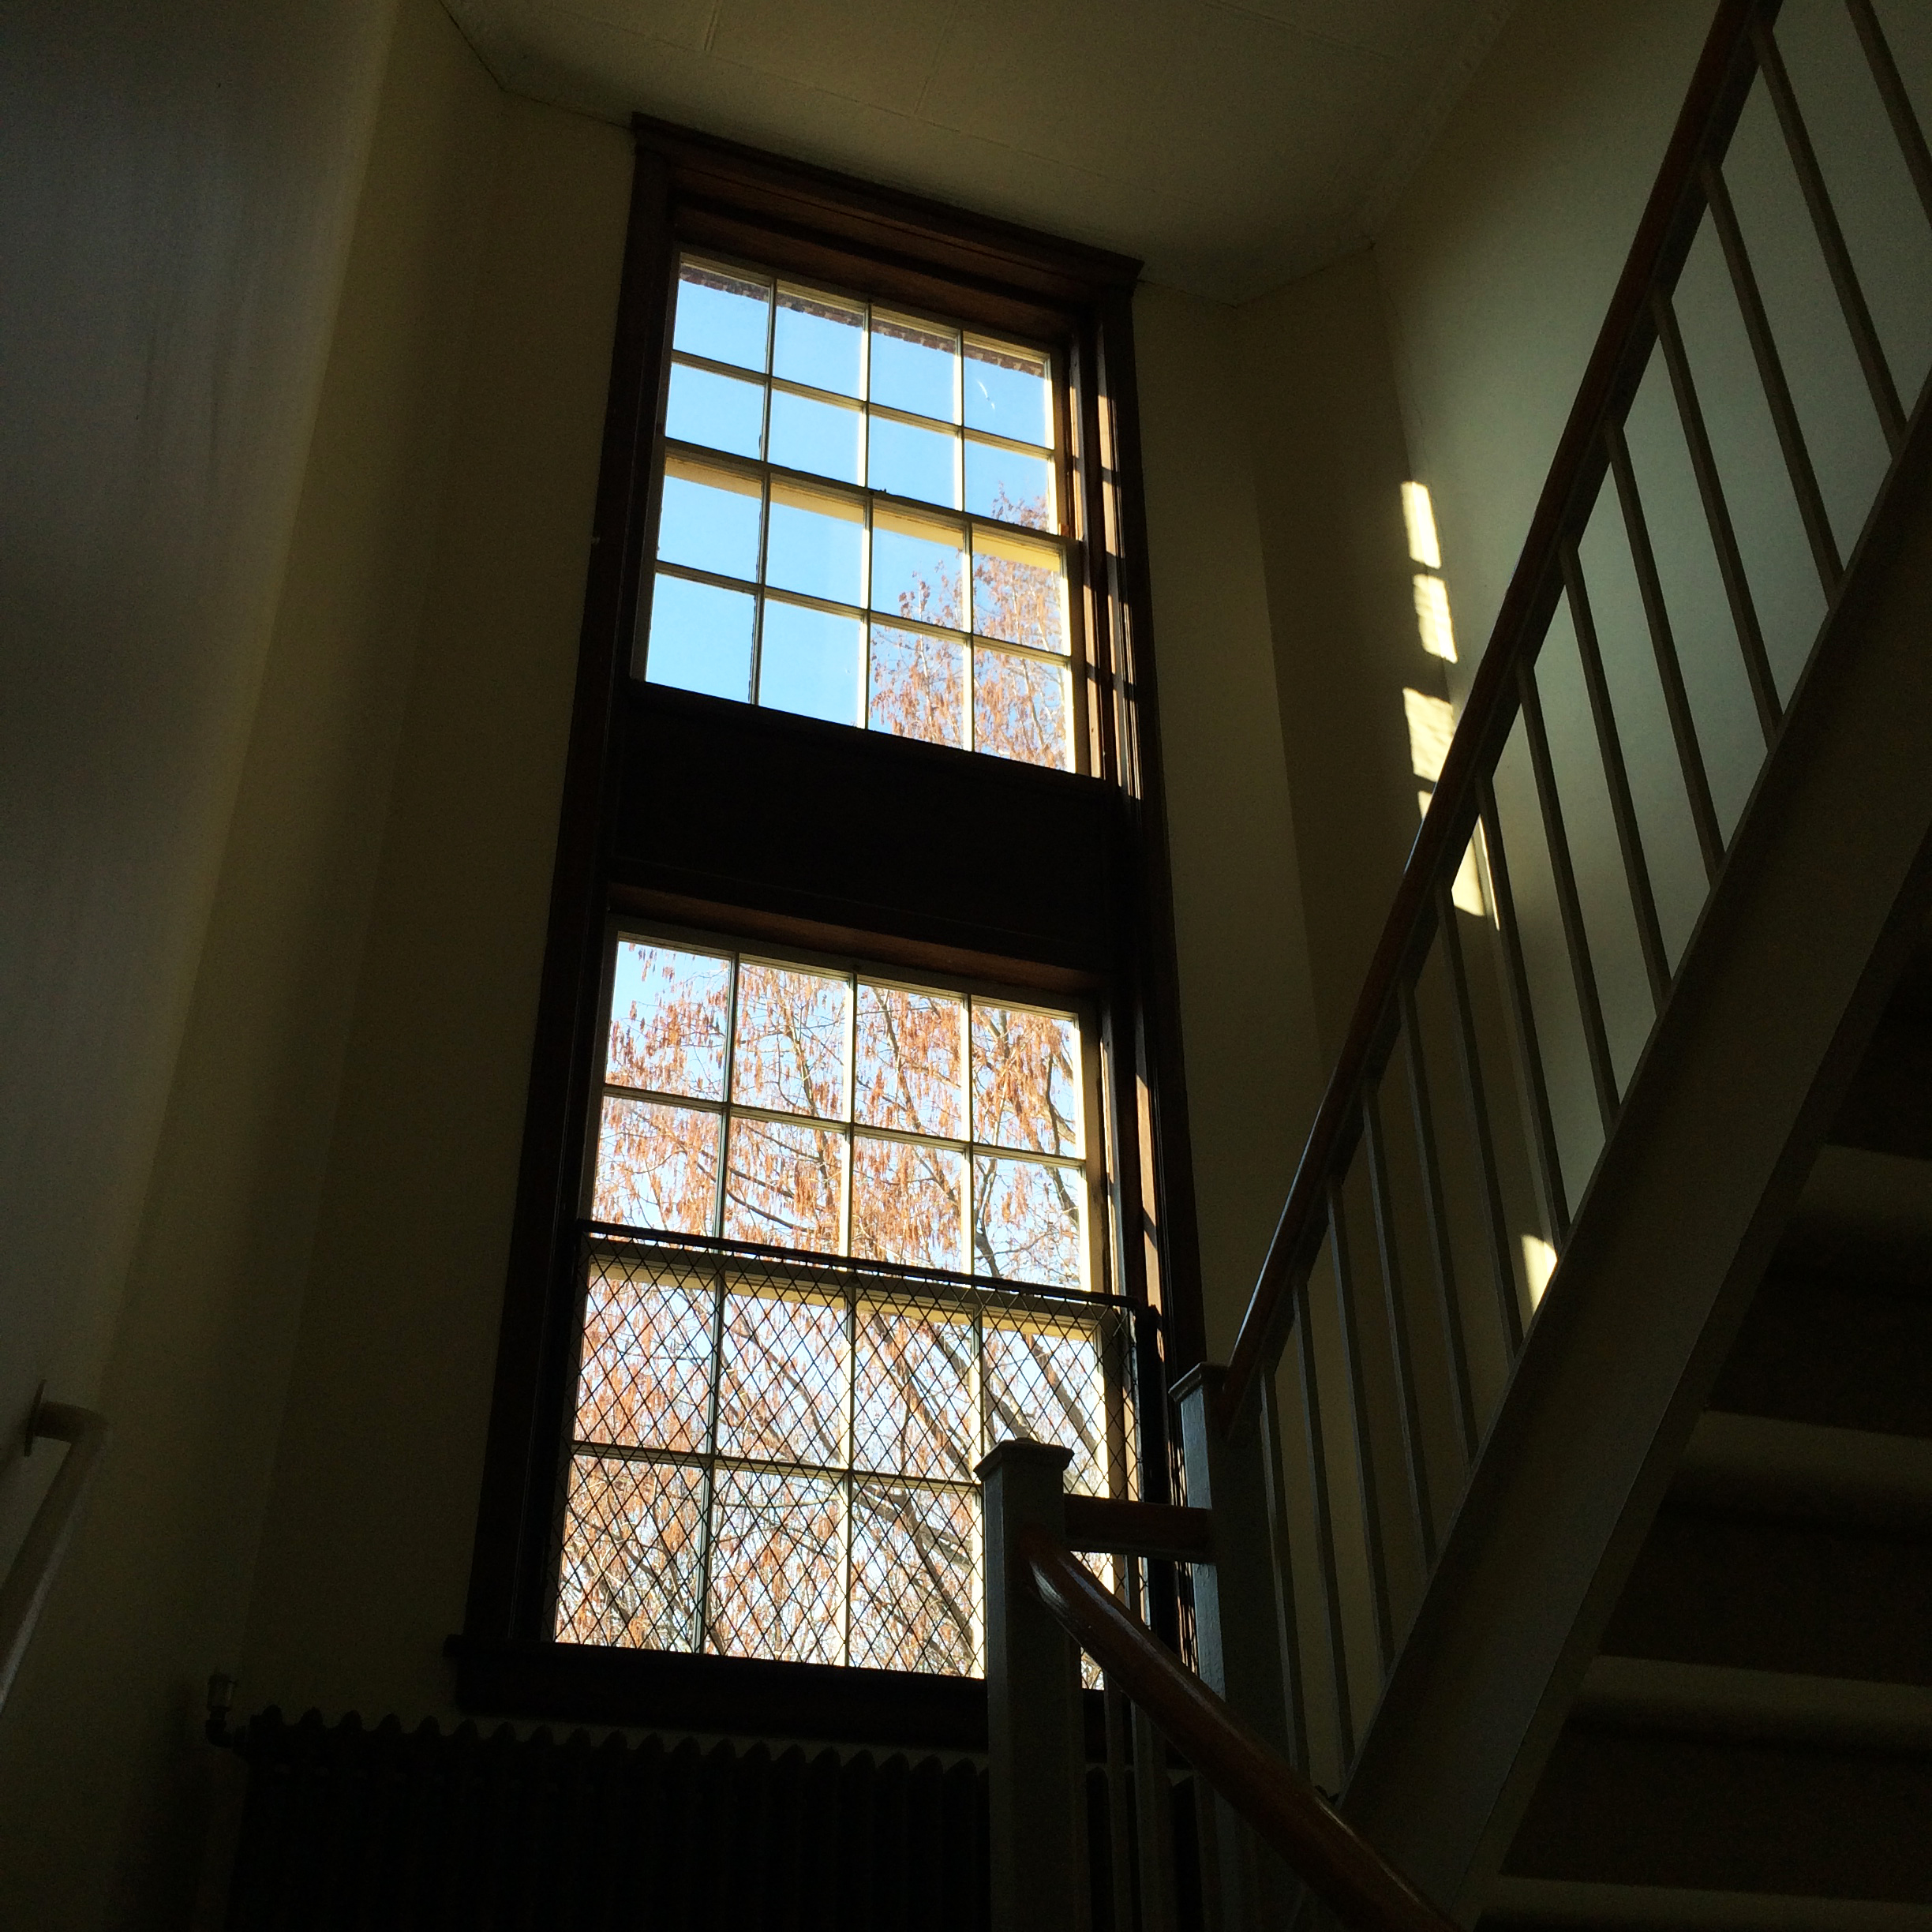 Double height windows in the stairwells looking out at a 100 year old tree at  Kendall Dean school in North Smithfield